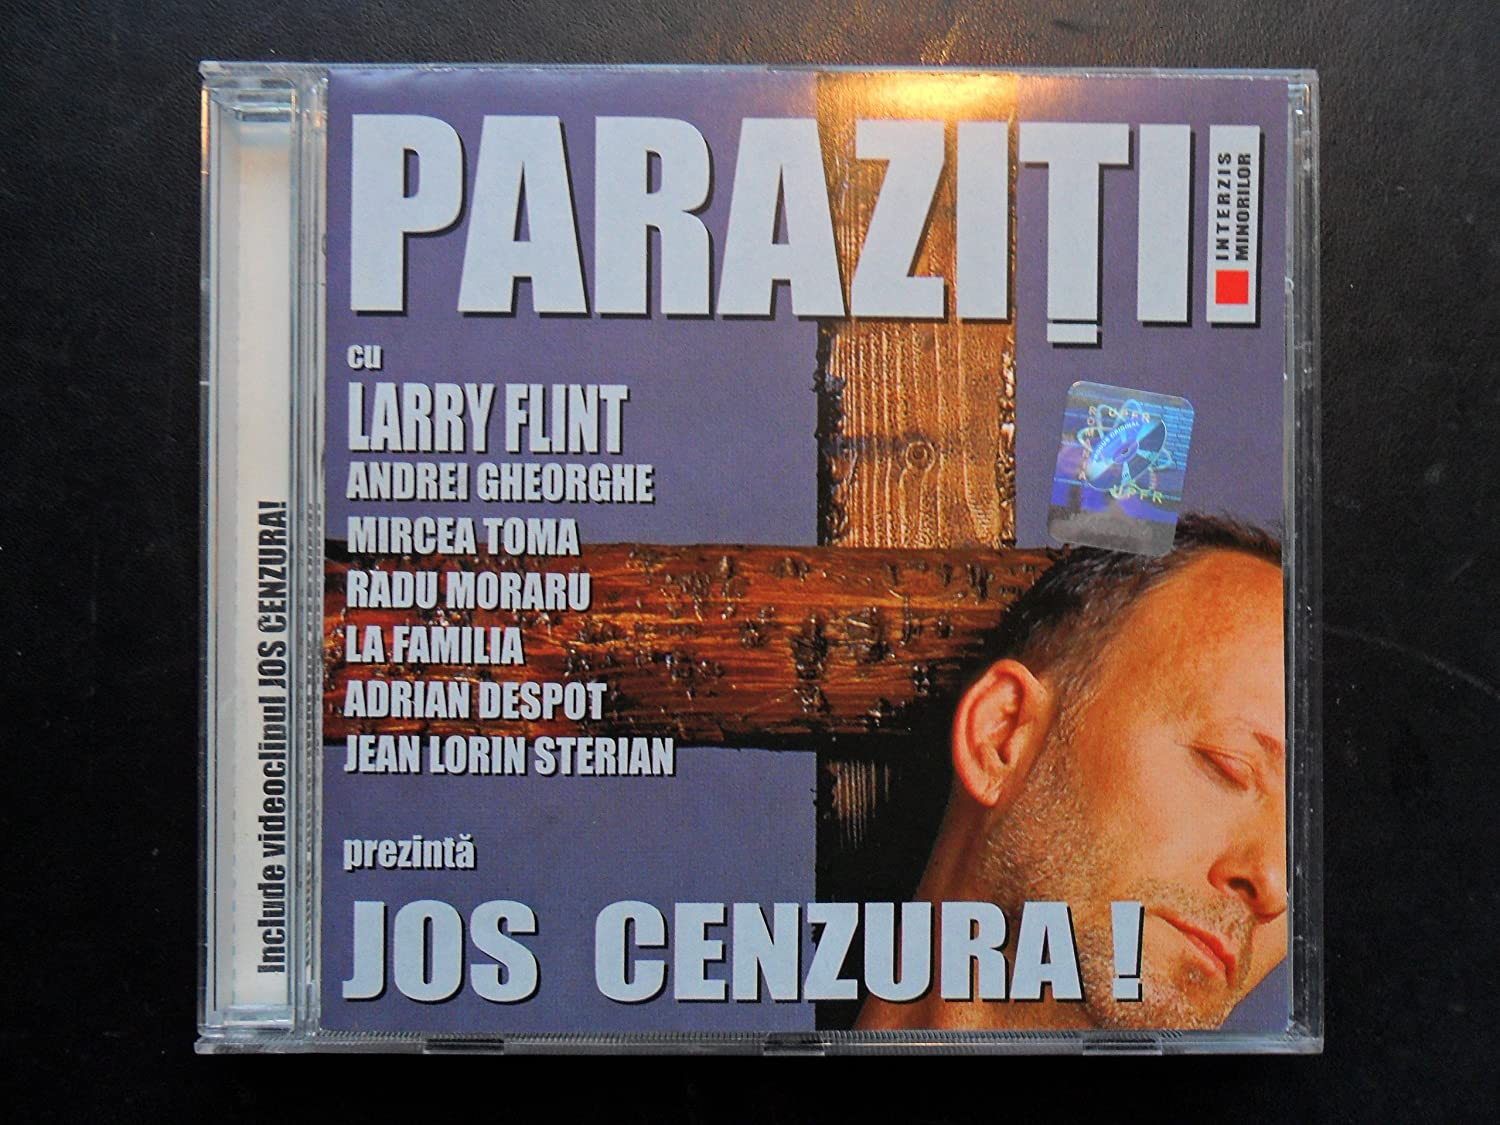 cd original parazitii